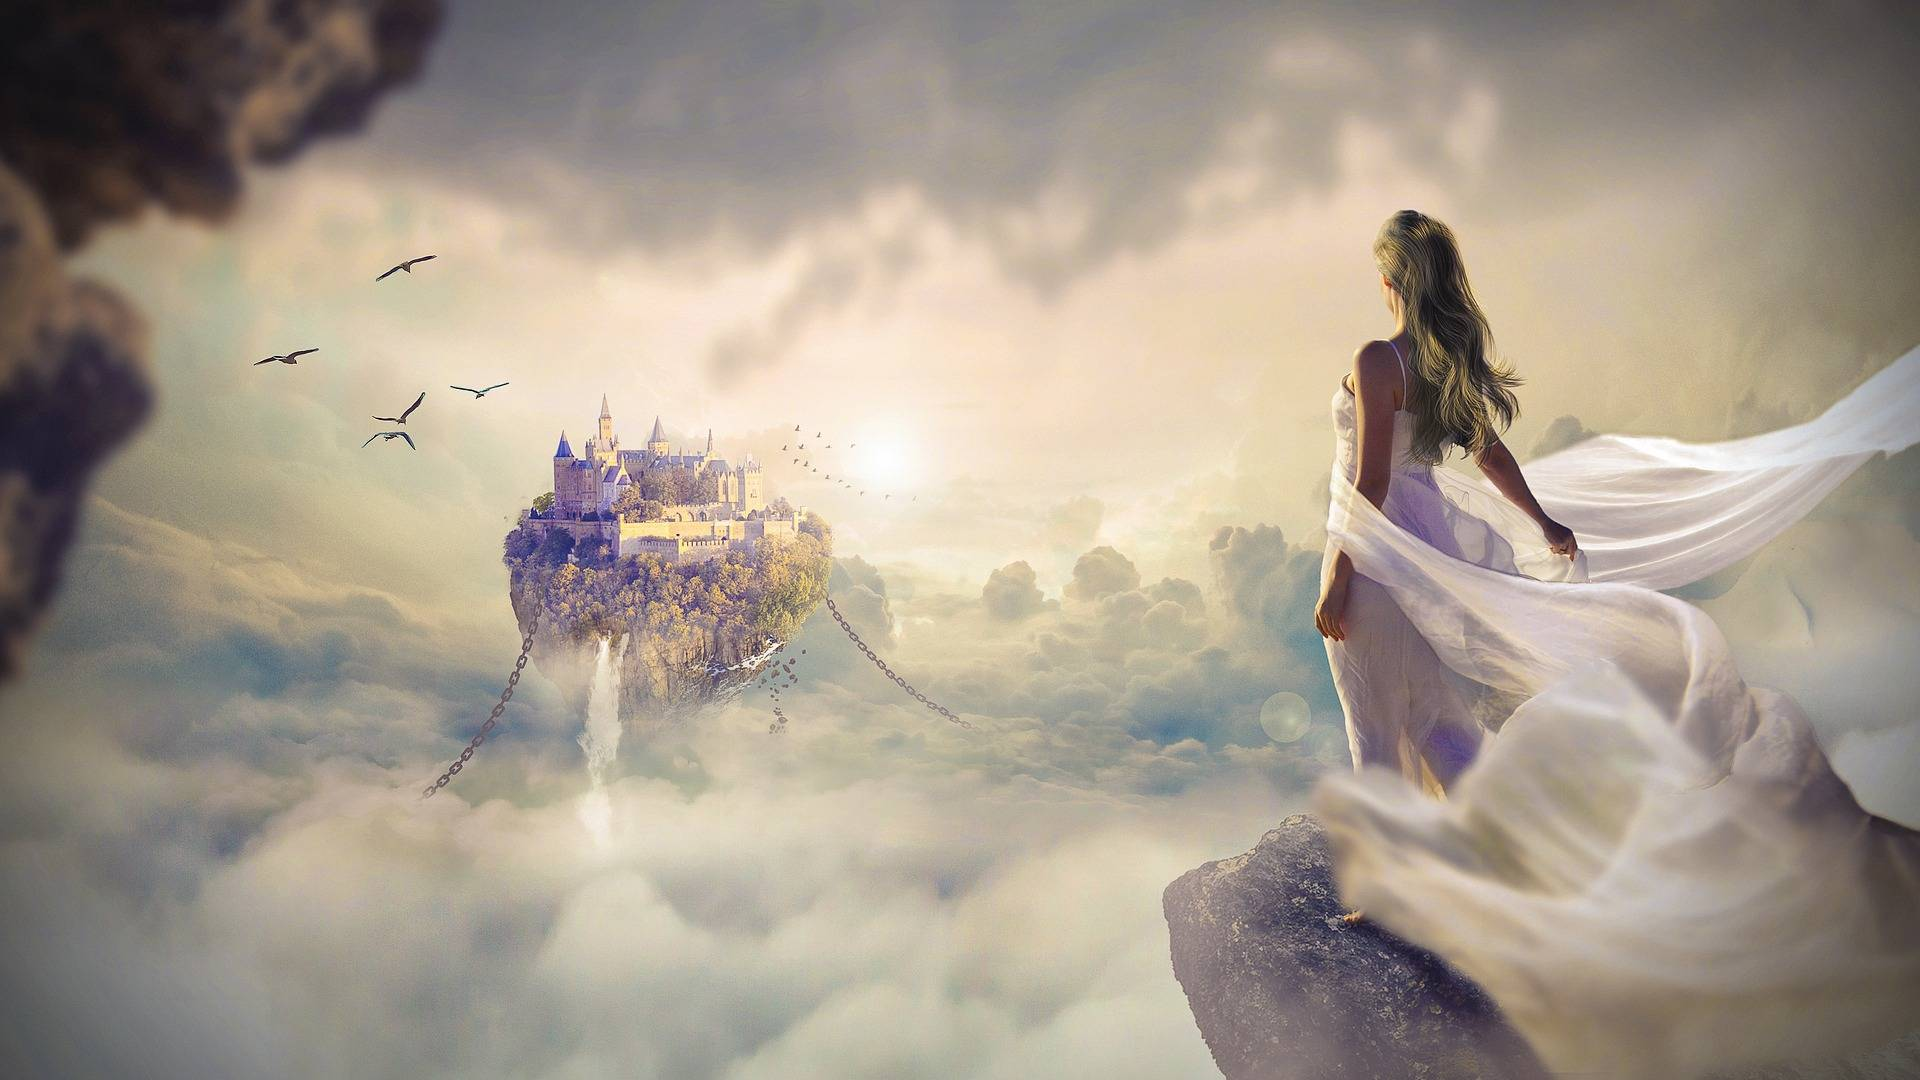 Fantasies Of life: How to Enjoy it to the Fullest